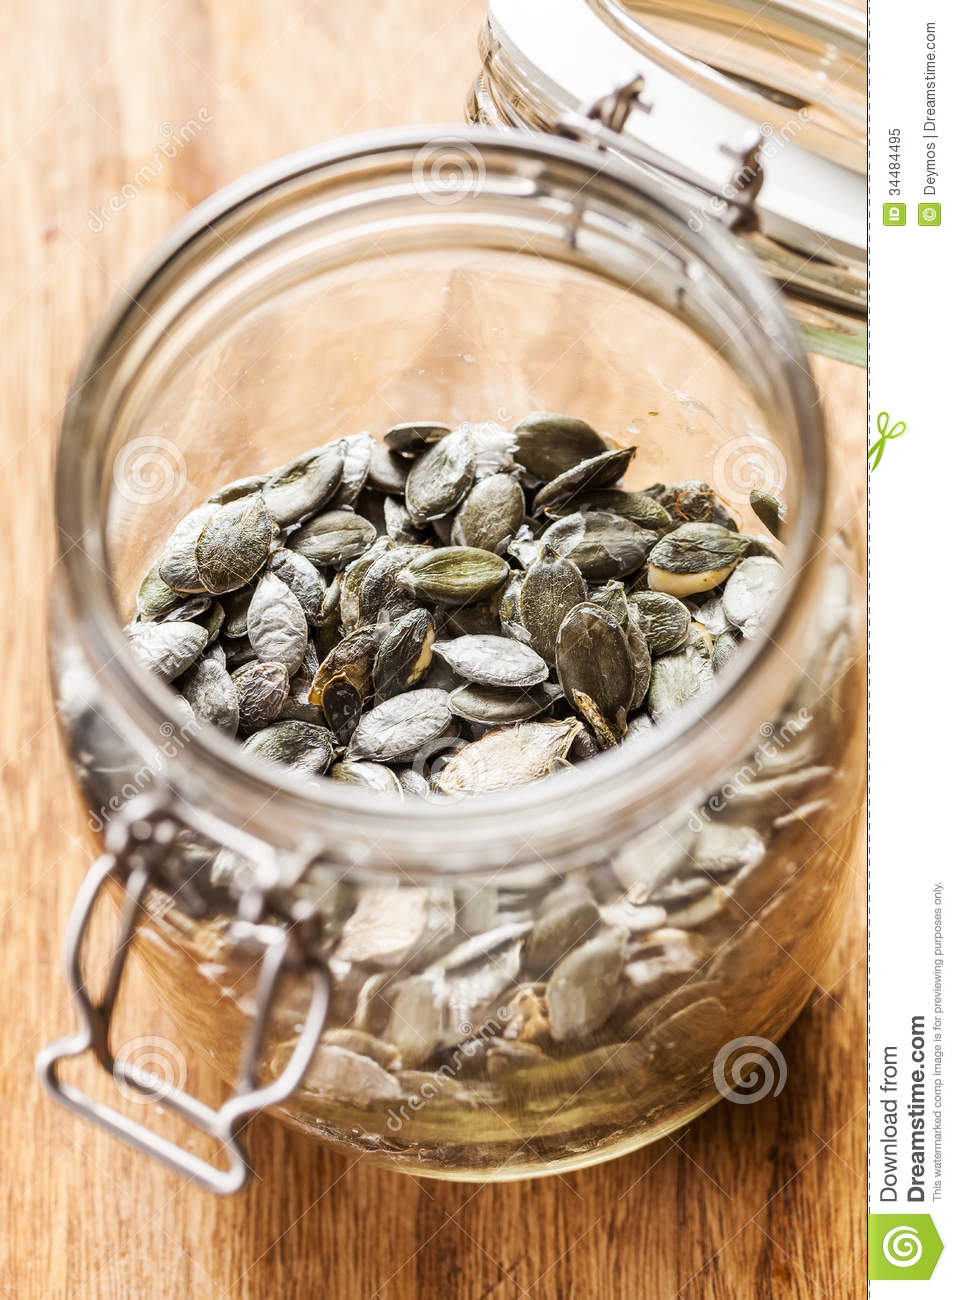 how to eat dry pumpkin seeds